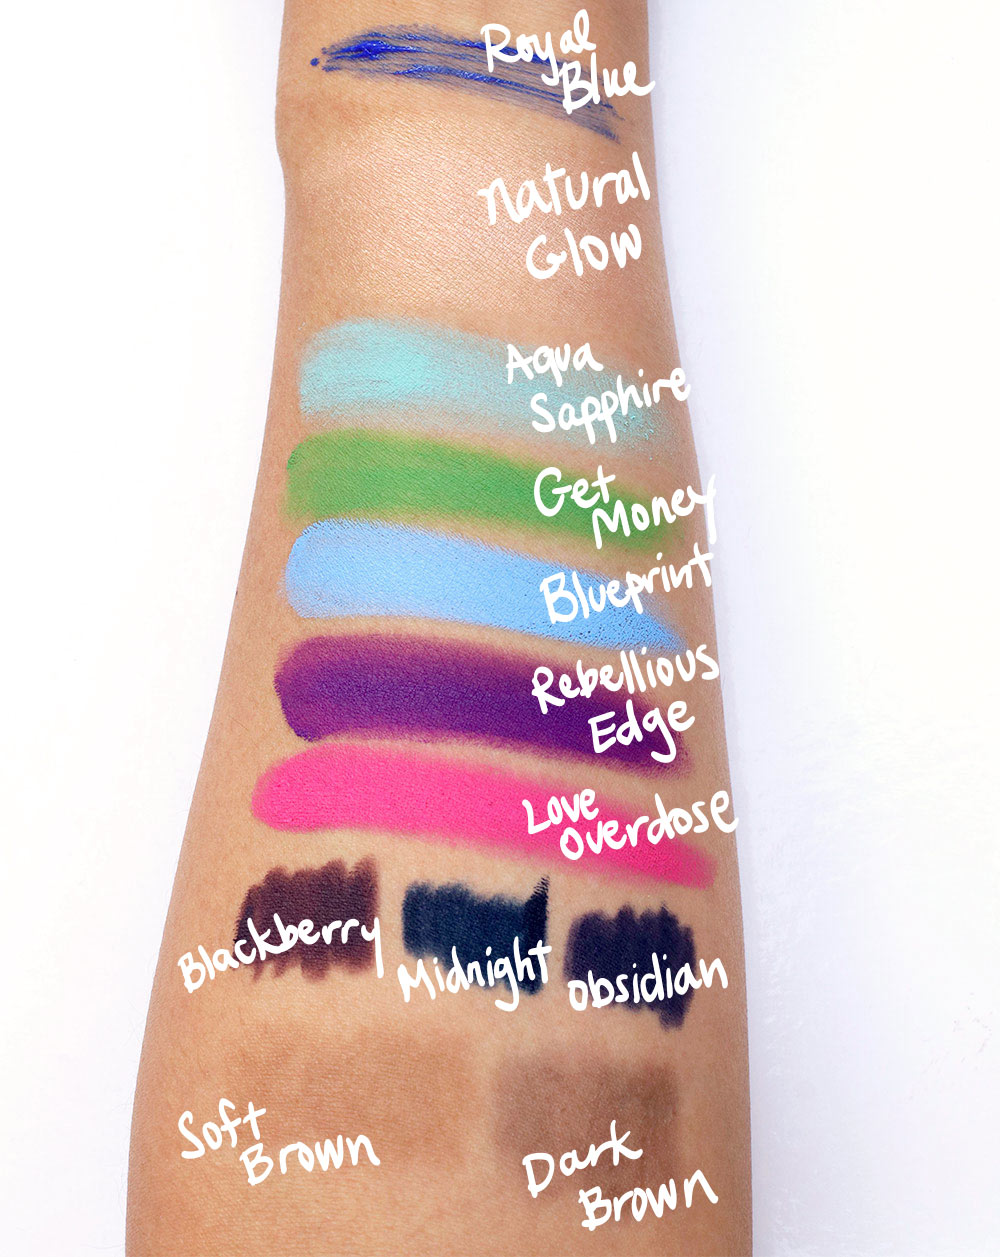 nyx maybelline maybelline revlon swatches final